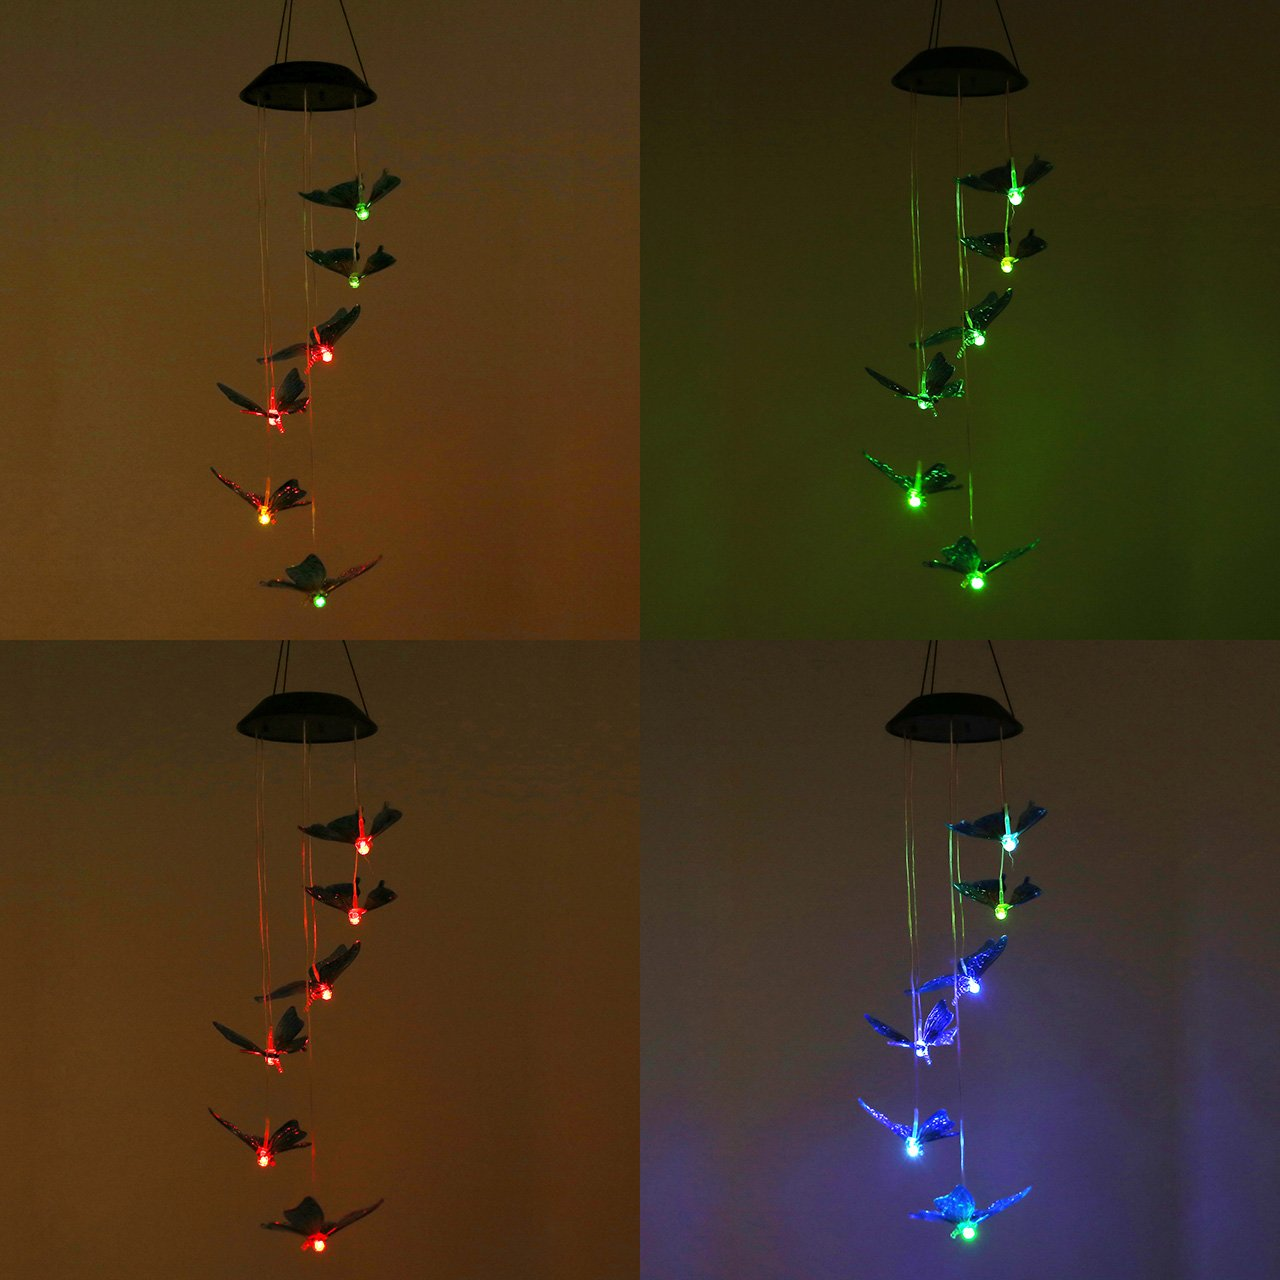 Yoption Color-Changing LED Solar Wind Chime, Romantic Spiral Spinner Outdoor Decorative Windbell Light for Patio, Deck, Yard, Garden, Home, Pathway (Colorful Butterfly)